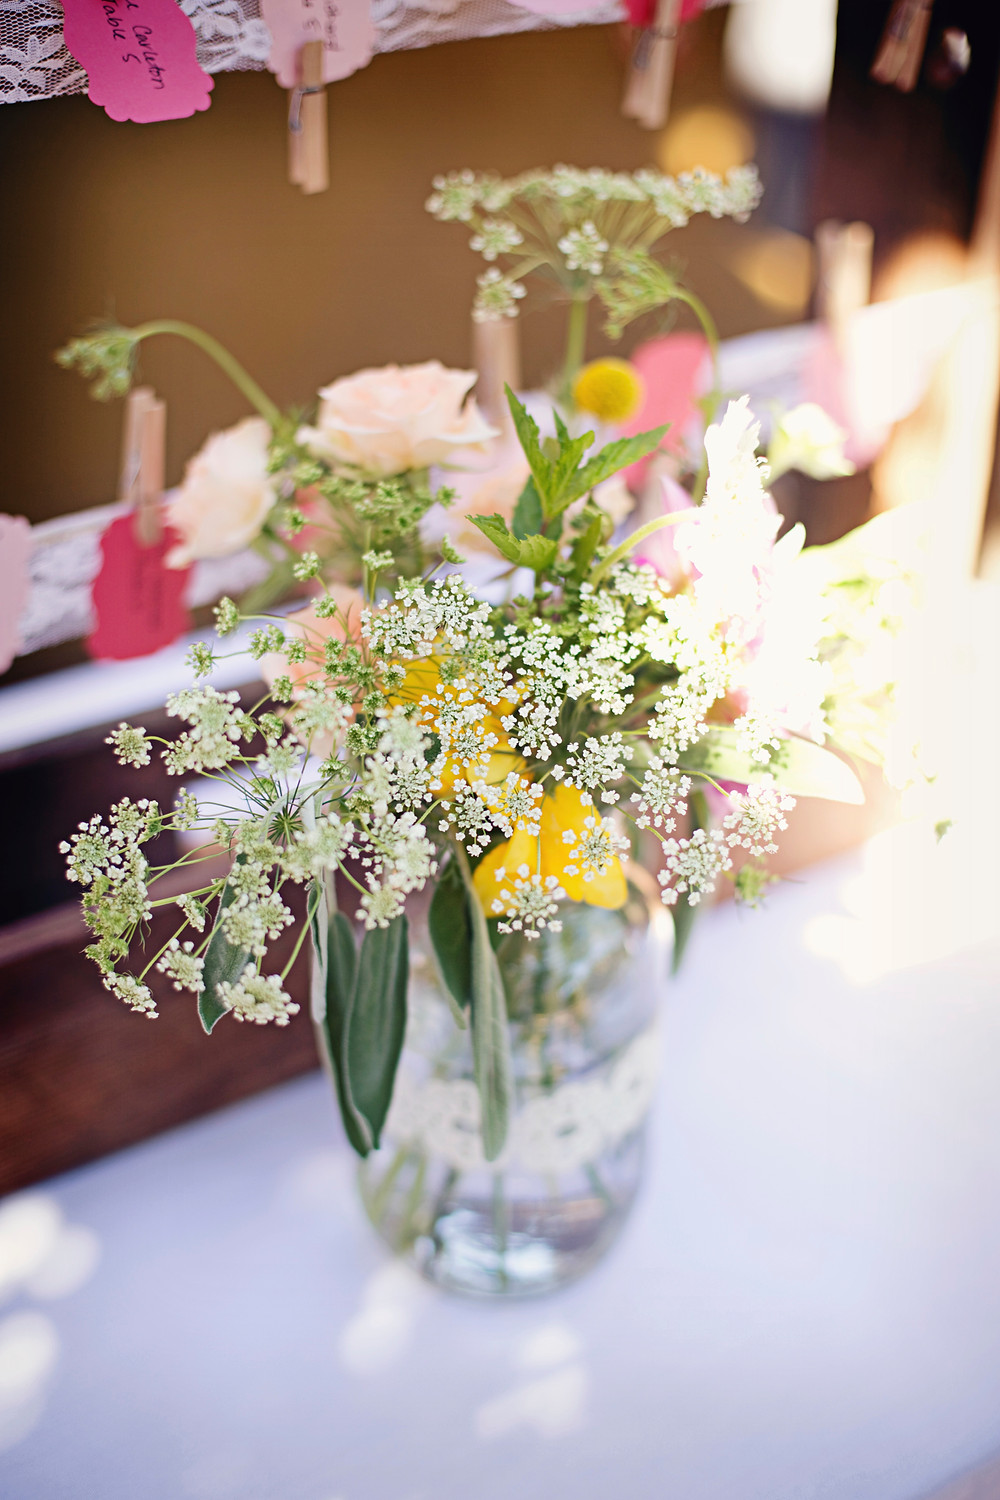 A vase of garden flowers sitting in a clear vase at a rustic Italian inspired wedding.